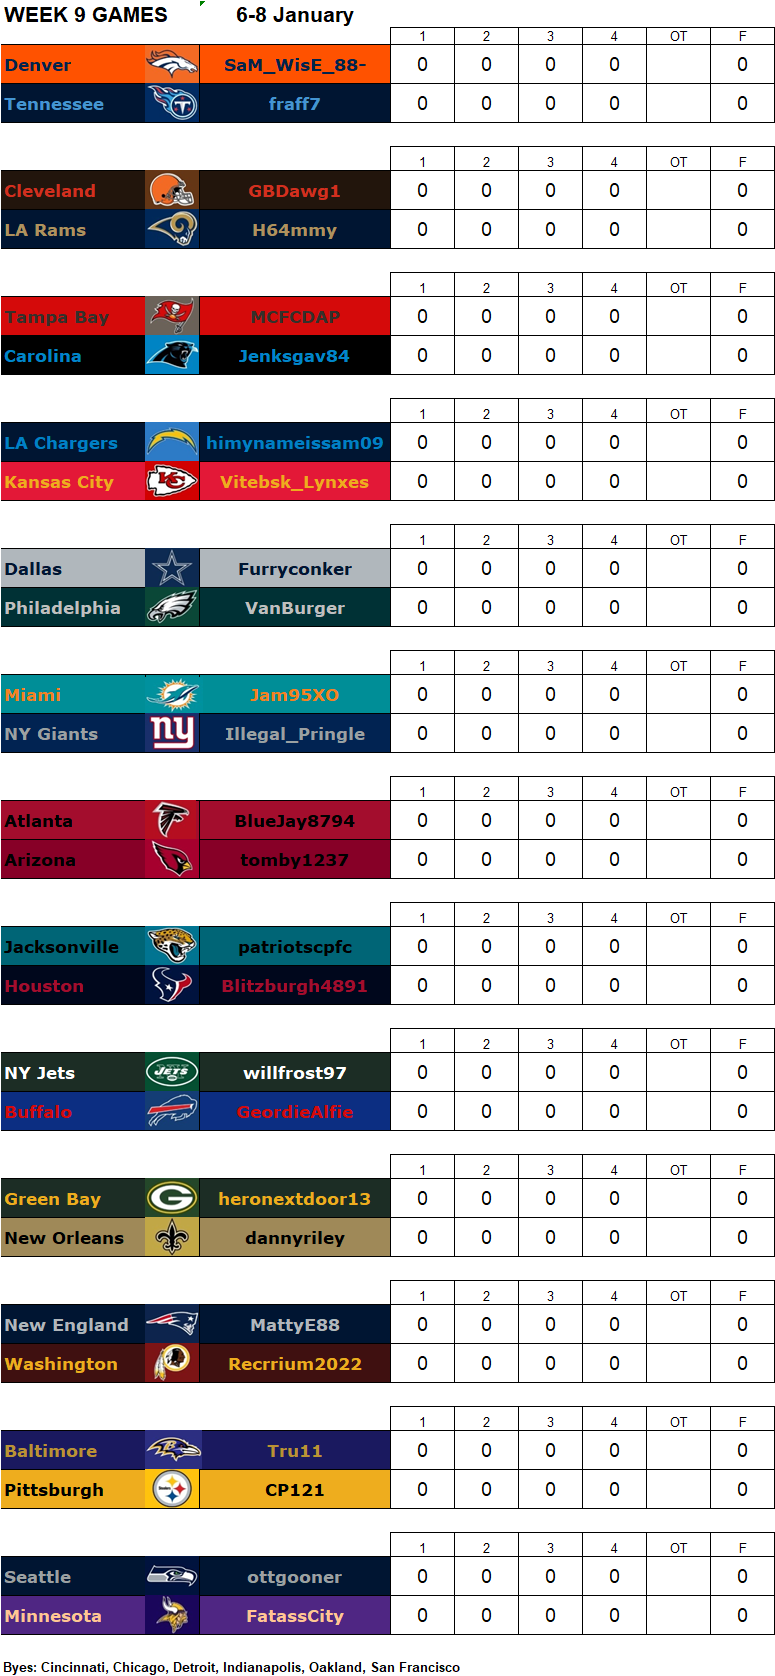 Week 9 Matchups, 6-8 January **Amended** W9g13